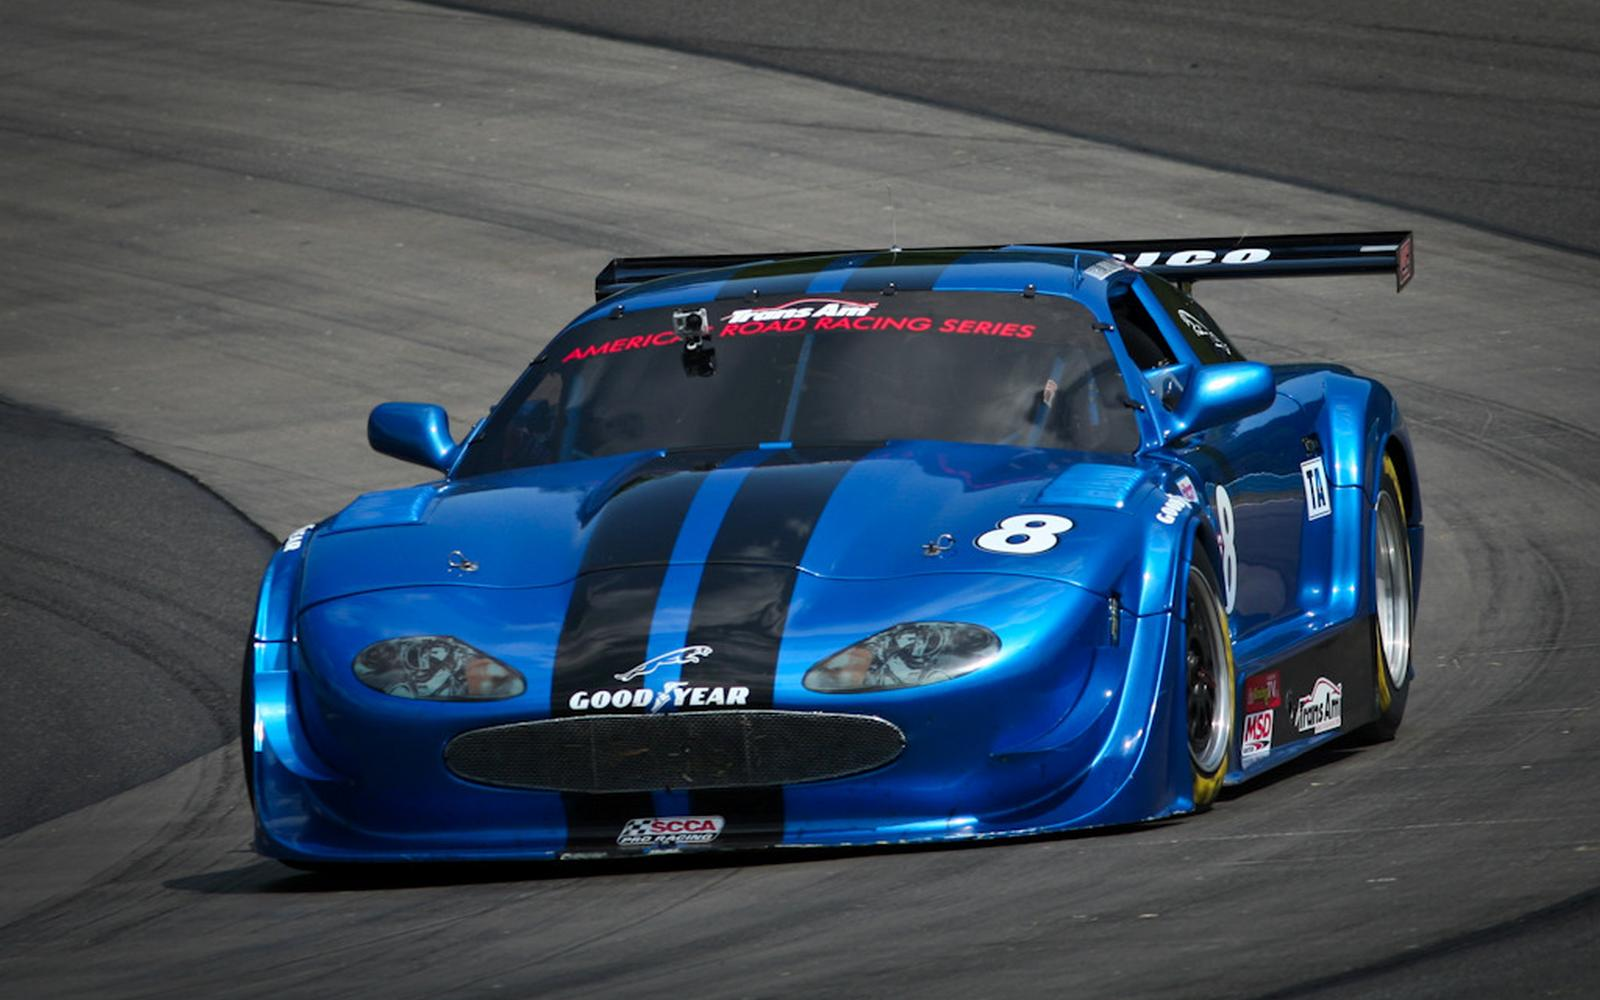 Diaz and Halsmer victorious in Trans Am race at Watkins Glen